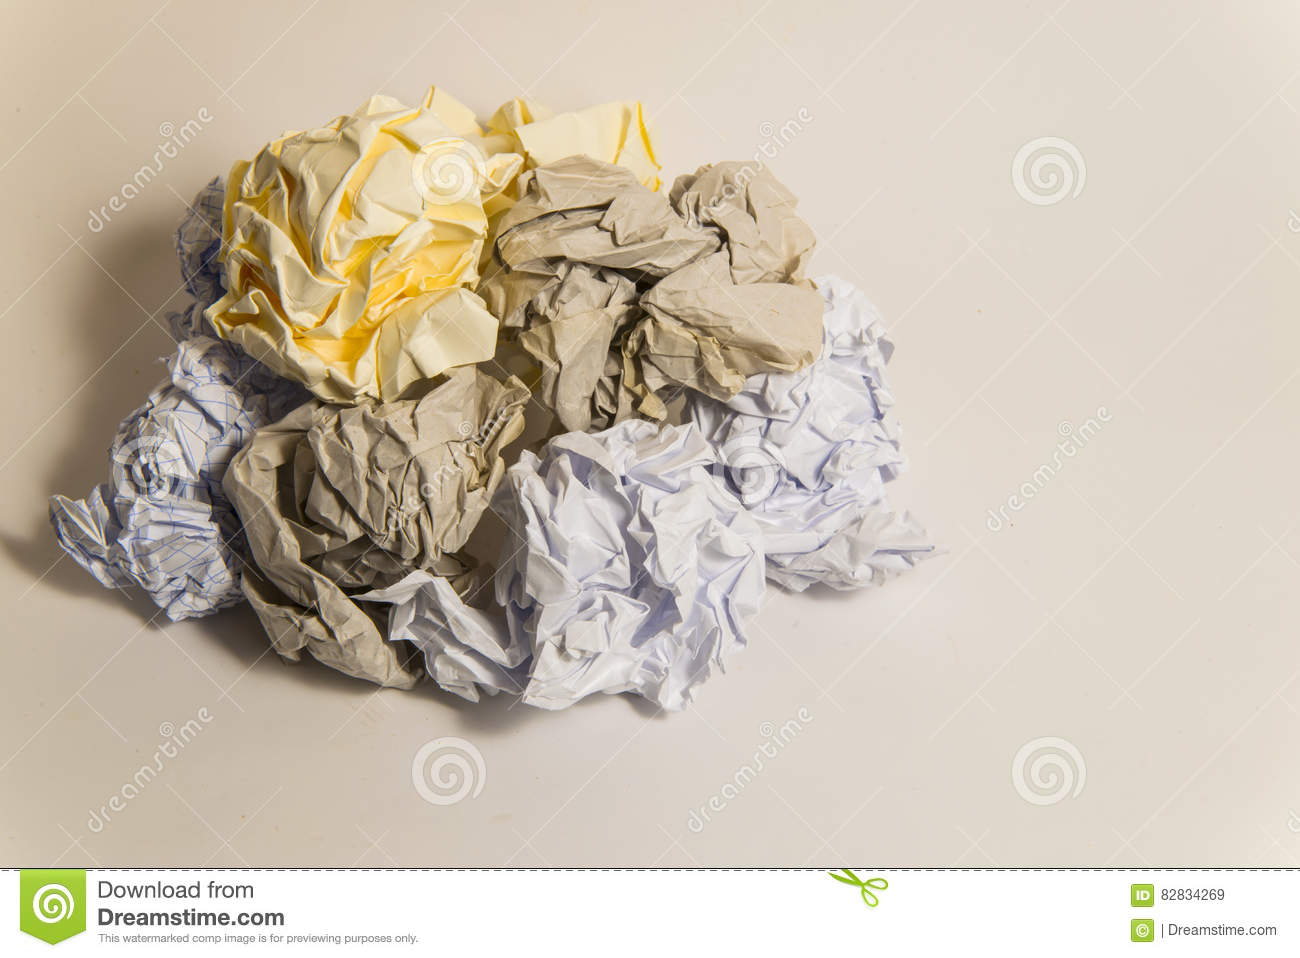 pile of colorful crumpled paper balls stock image - image of folded